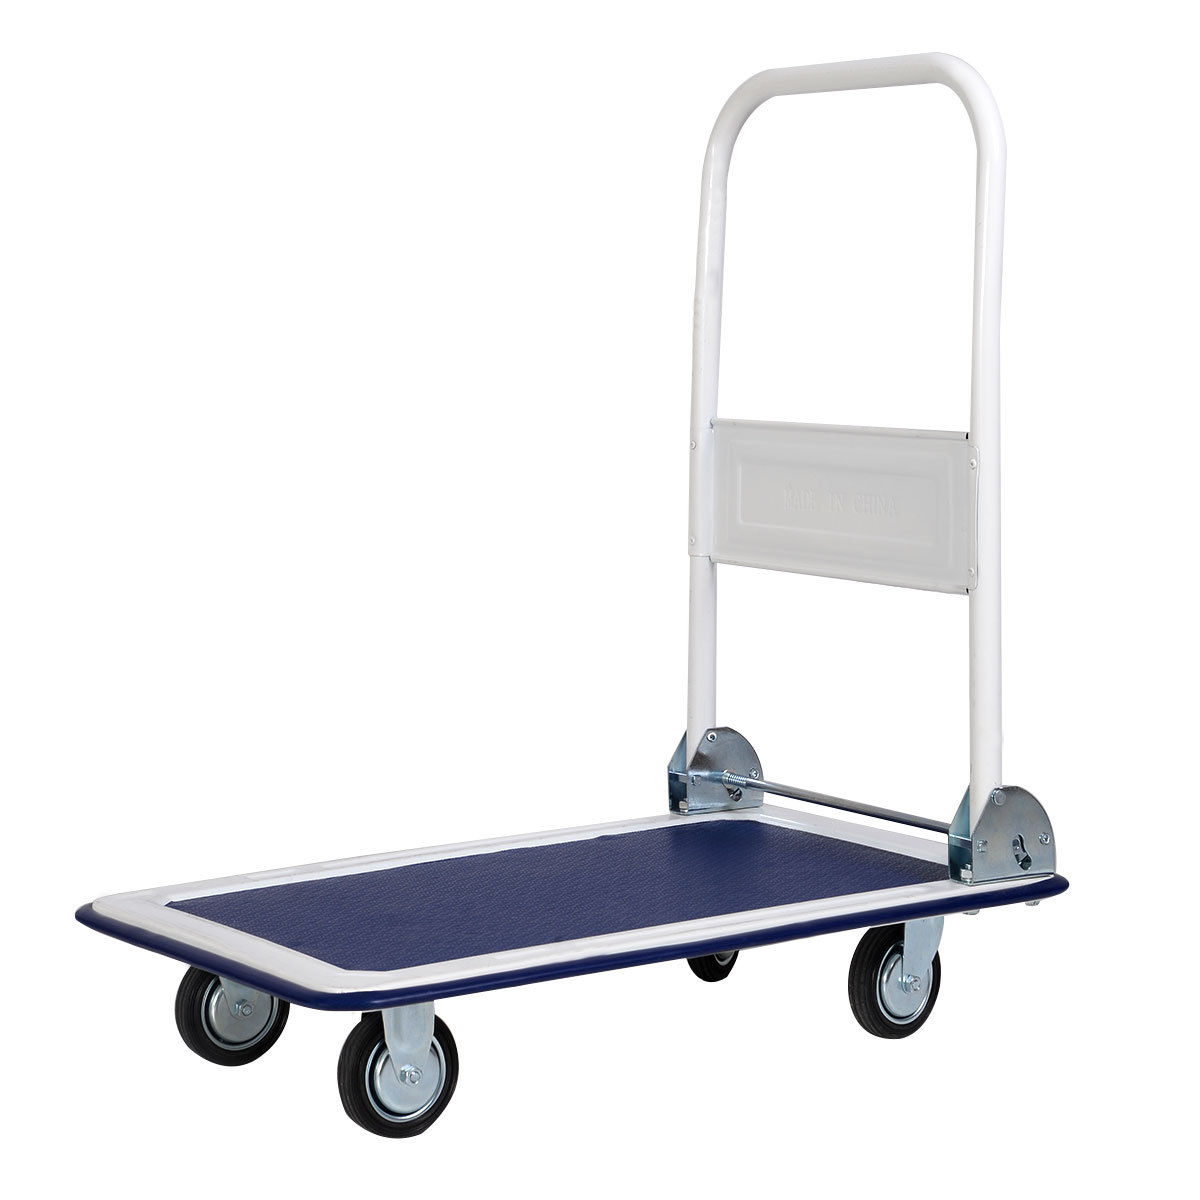 Costway 330lbs Platform Cart Dolly Folding Foldable Moving Warehouse Push Hand Truck New by Costway